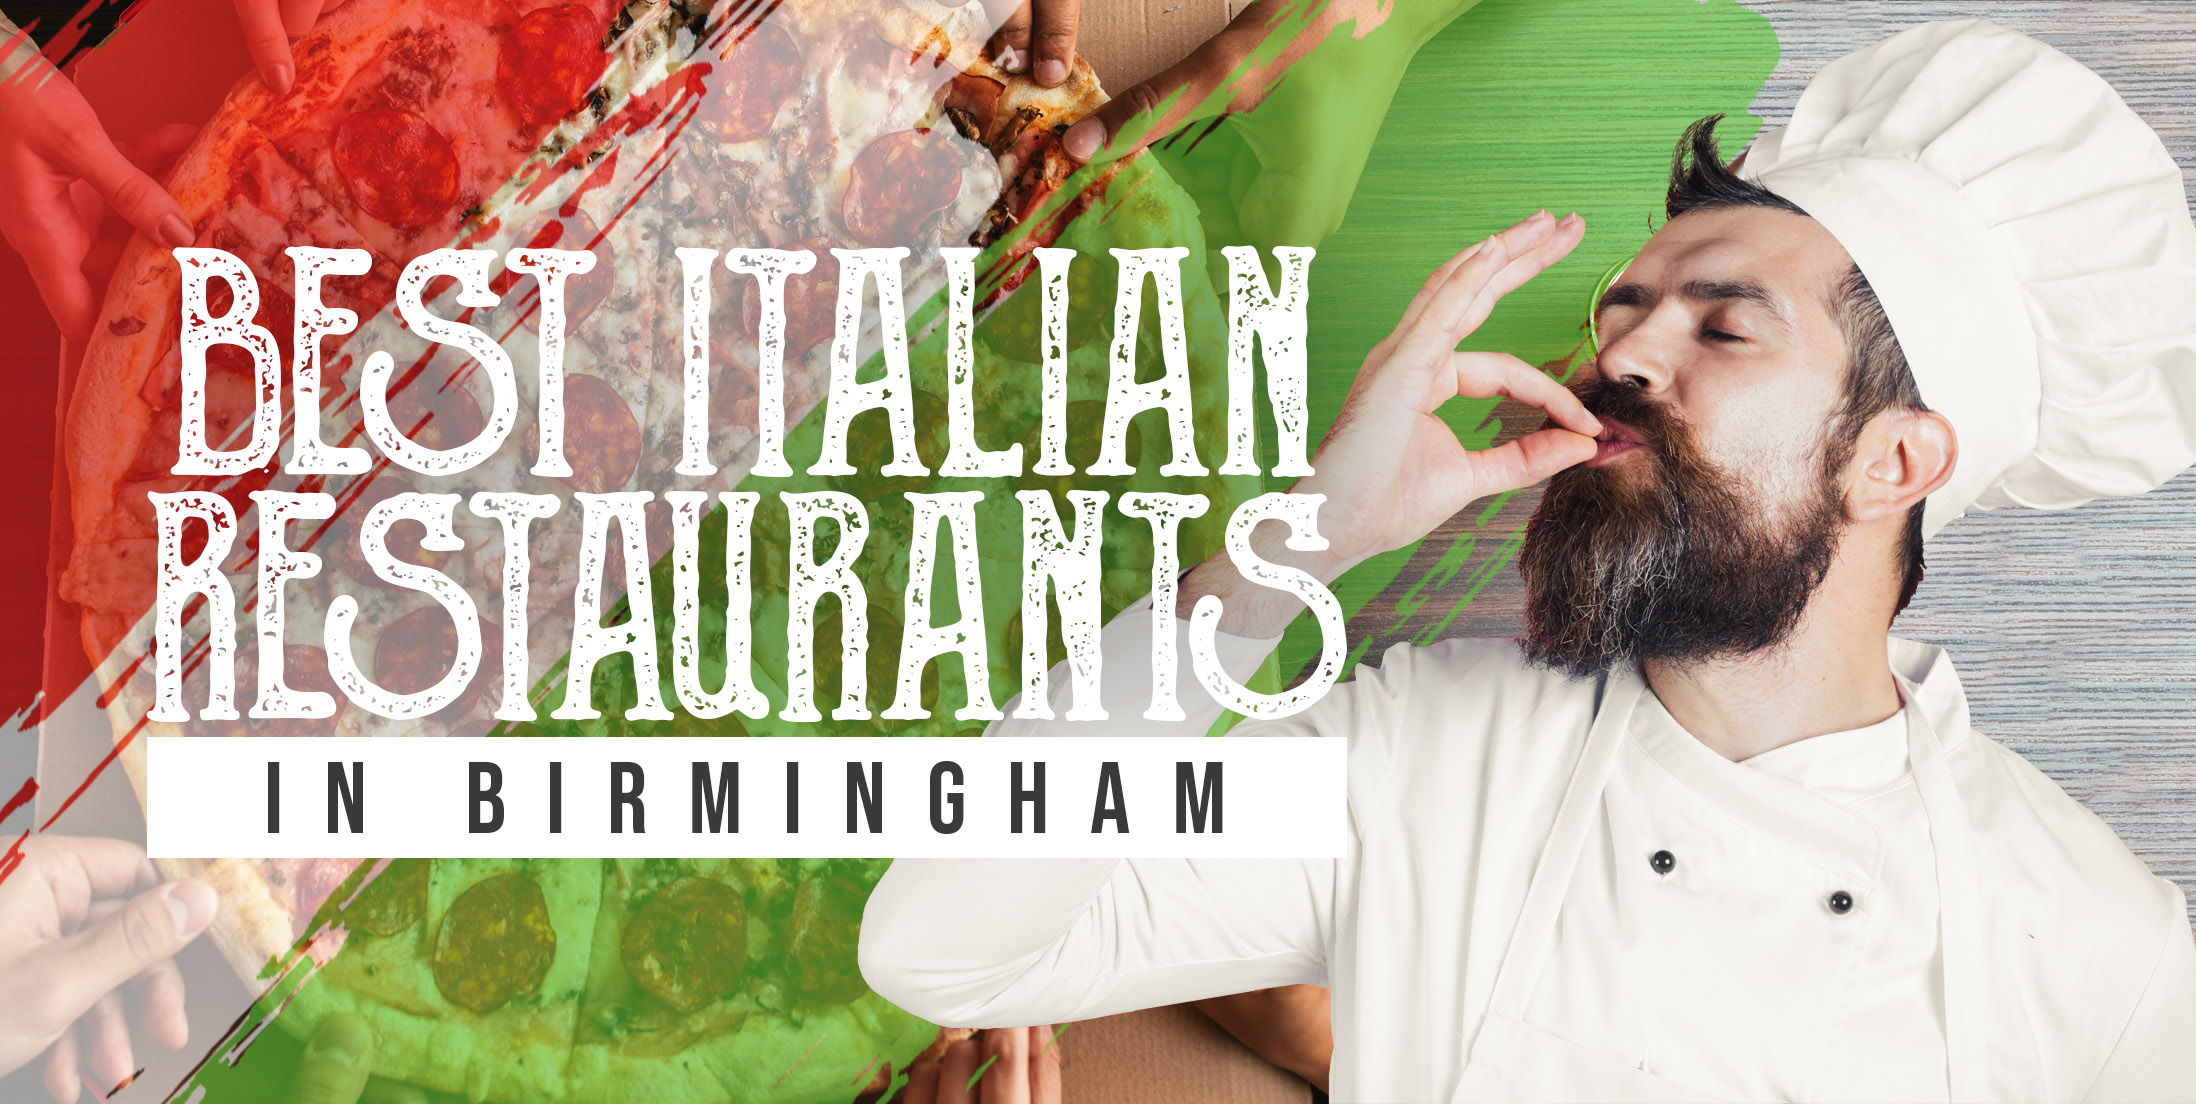 Best Italian Restaurants in Birmingham